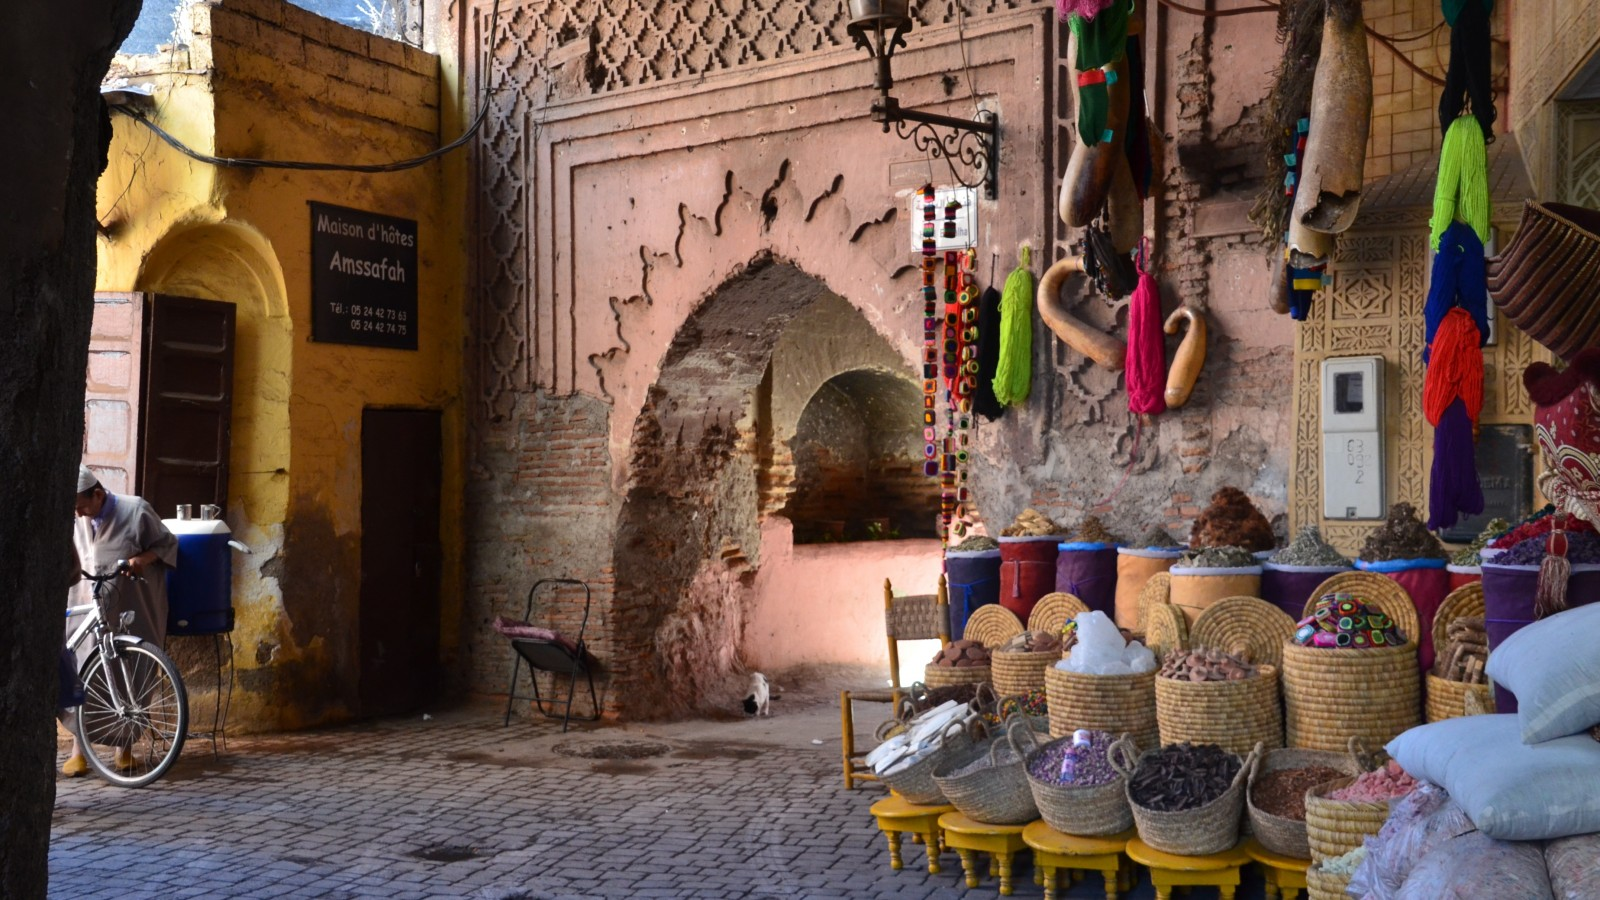 Colourful spices in sacks line the souks within Marrakech's Old Medina